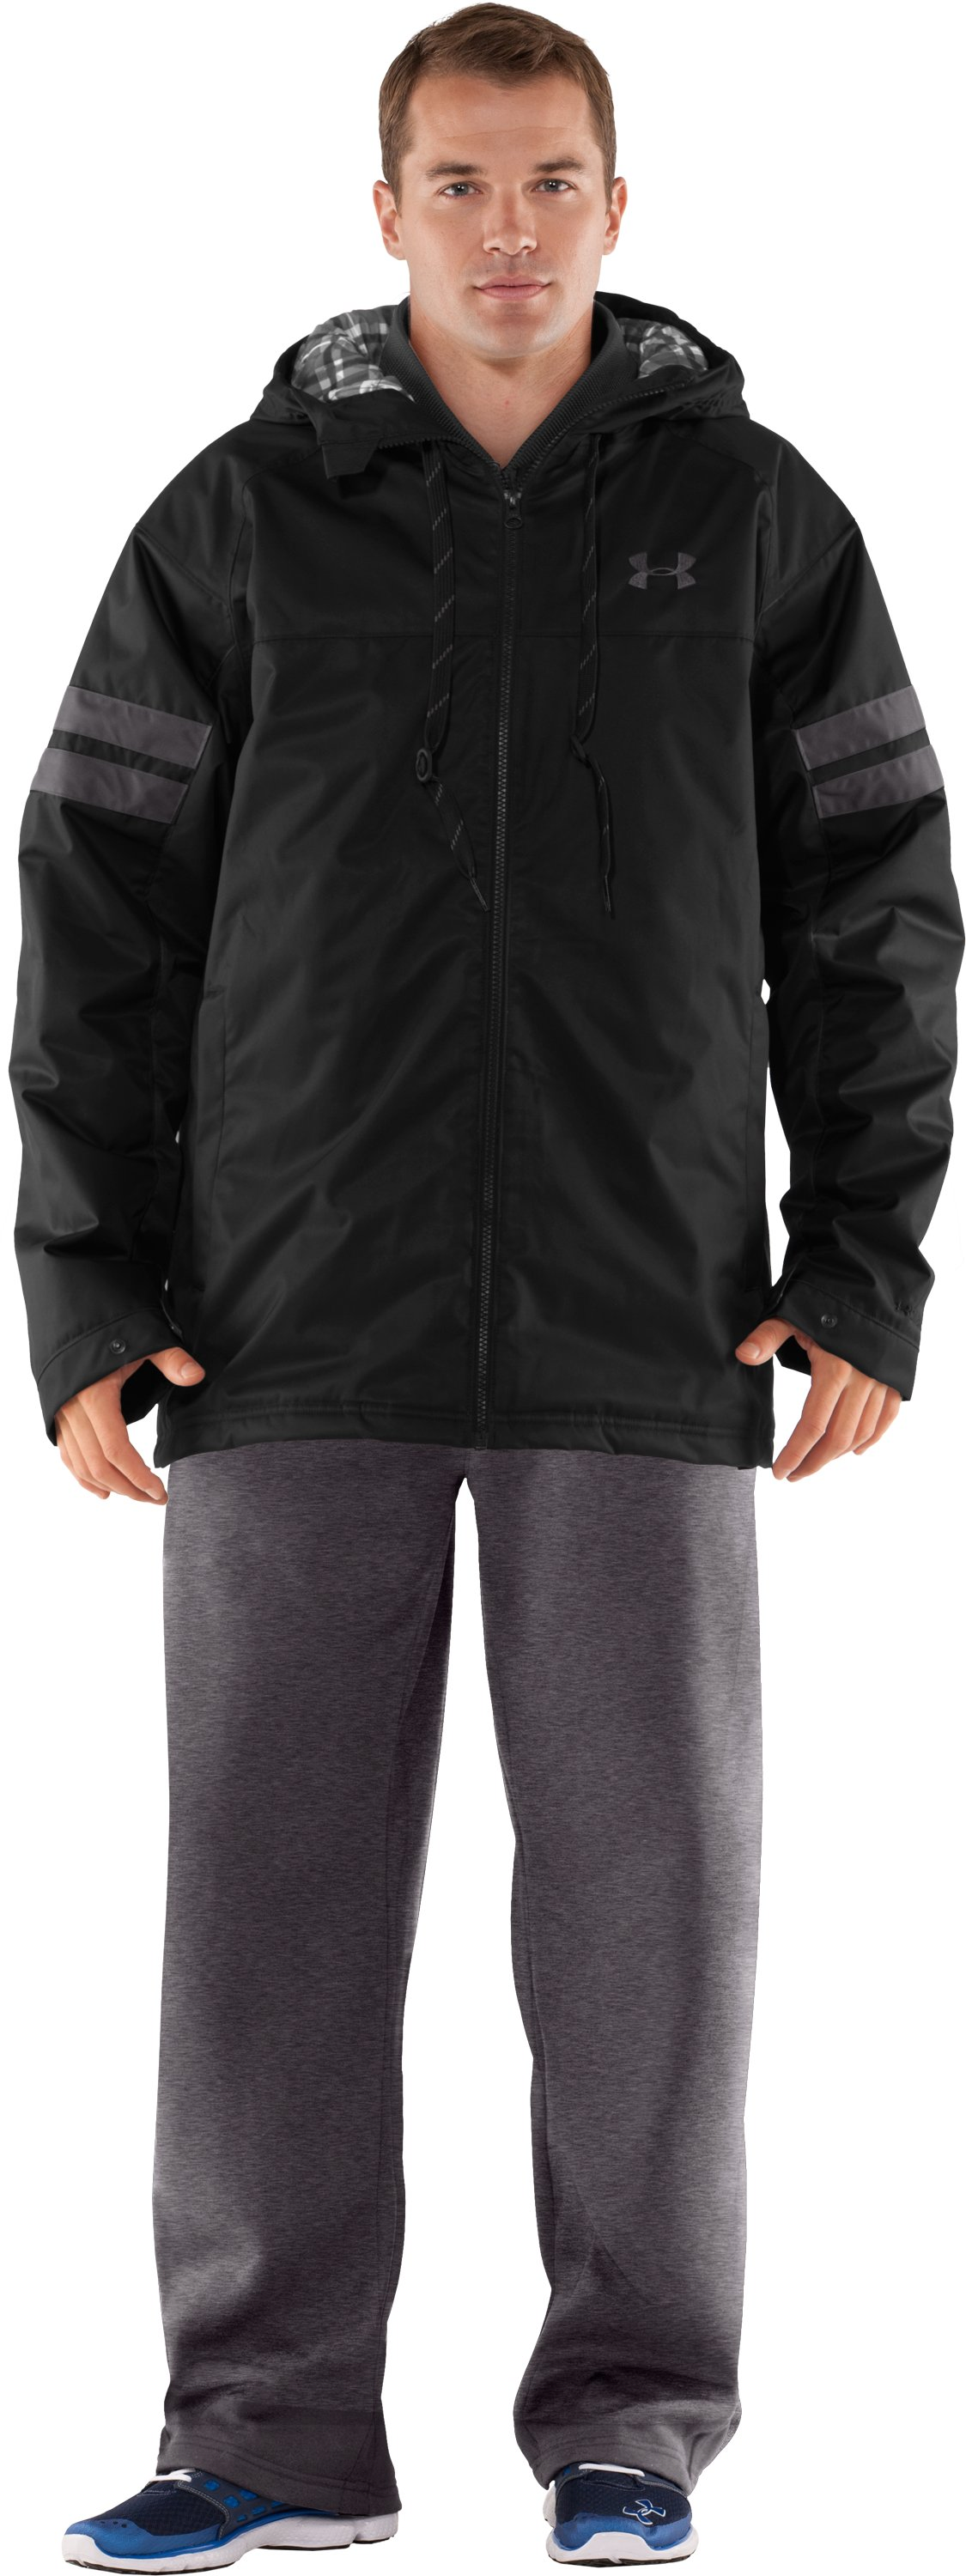 Men's UA Universe Storm 3-in-1 Jacket, Black